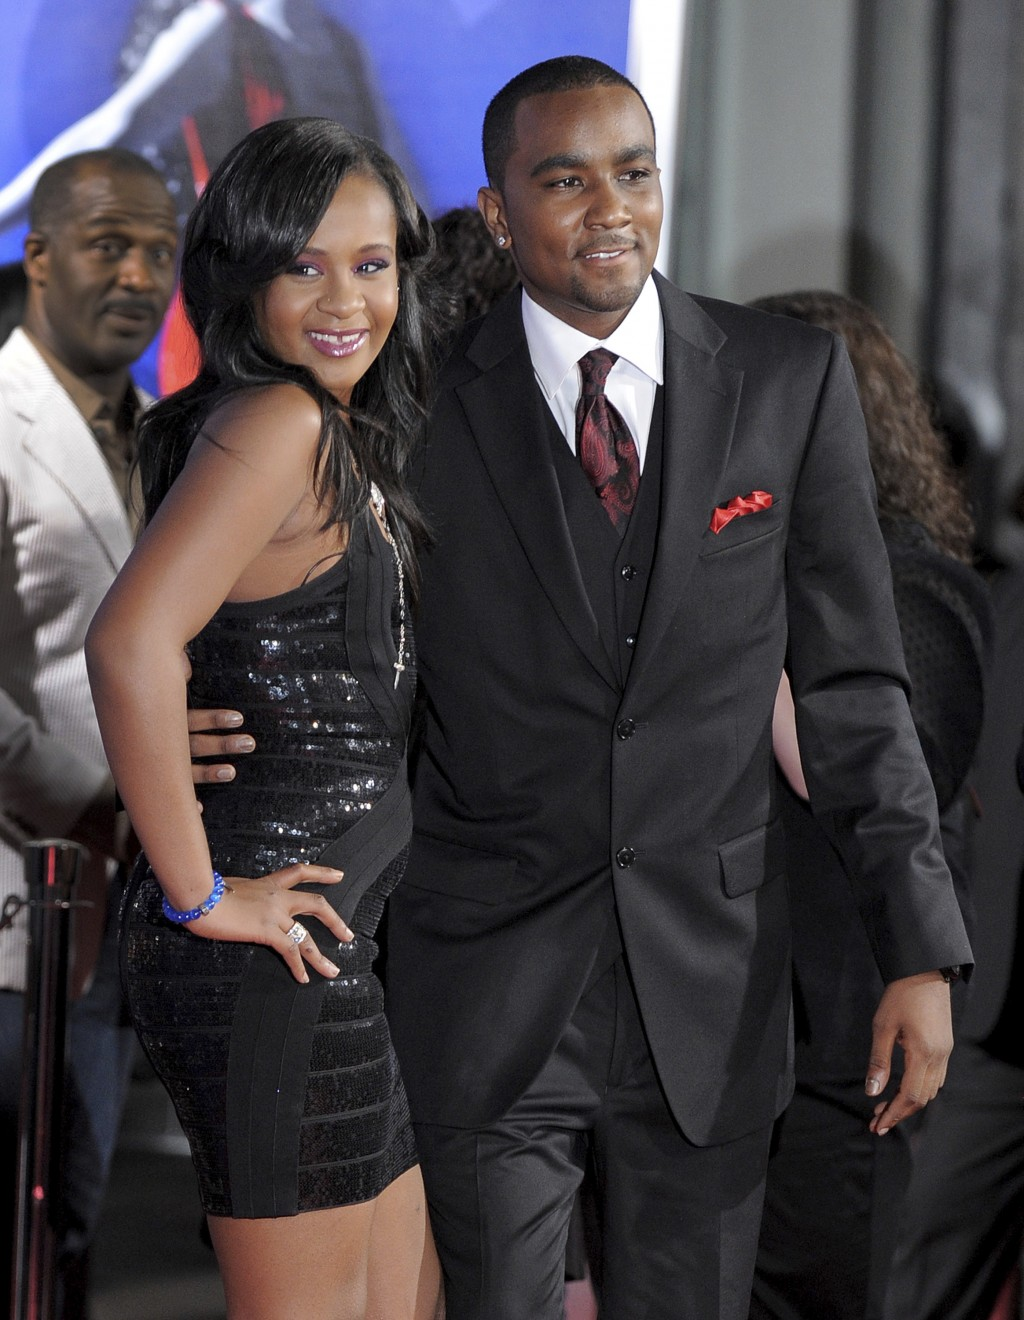 Nick Gordon, Bobbi Kristina Brown's former boyfriend, dead at age 30